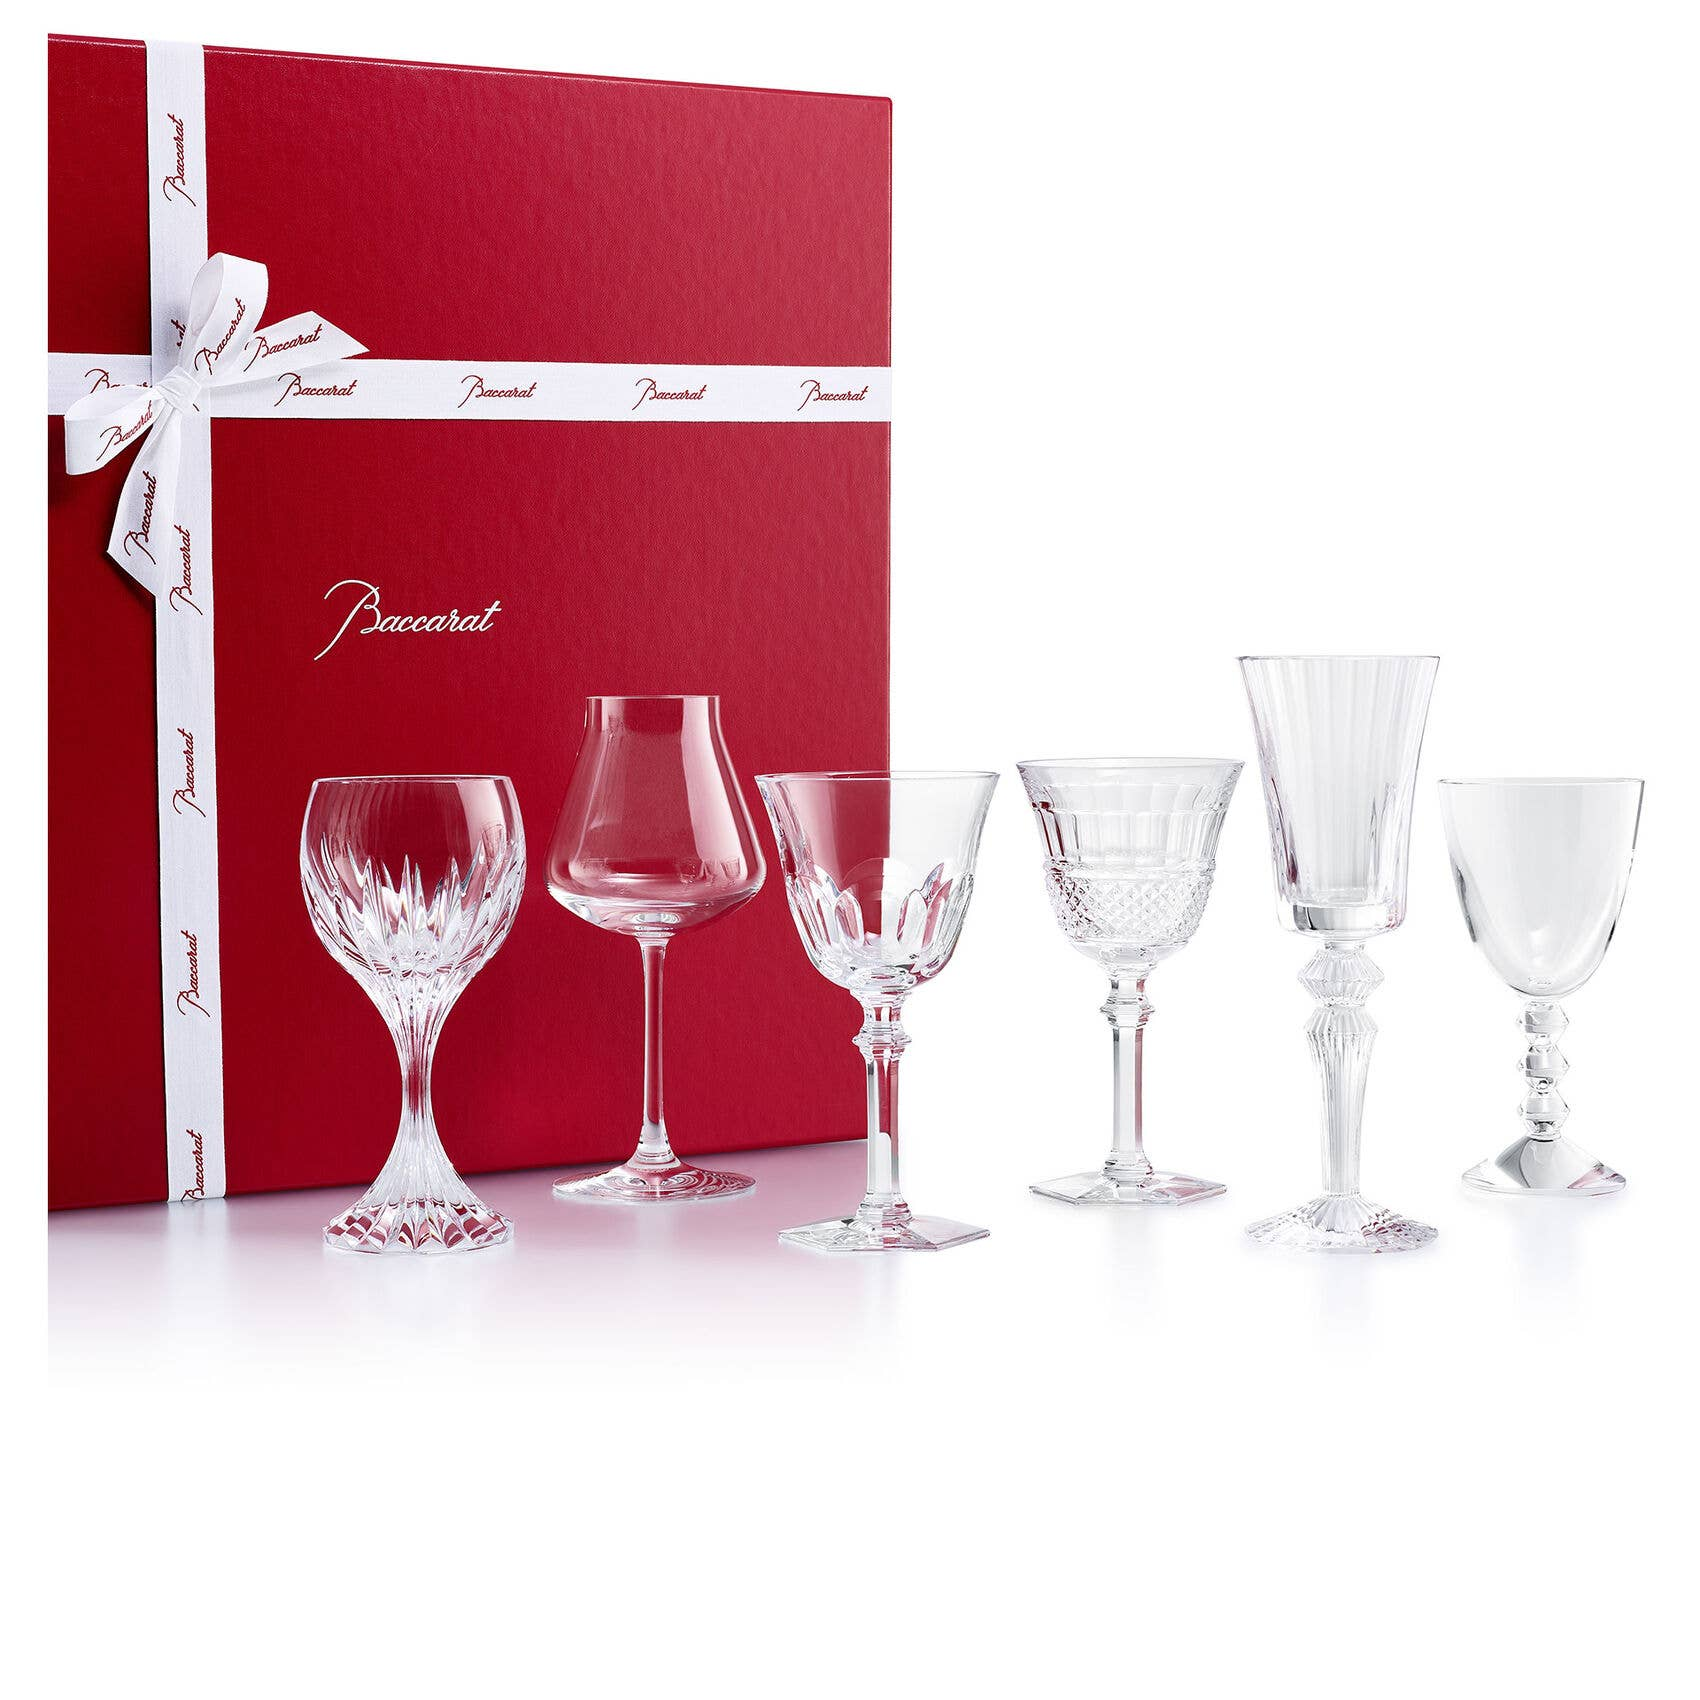 Wine Therapy set with Harcourt Eve, Diamant Eve, Château Baccarat, Massena, Vega and Mille Nuits